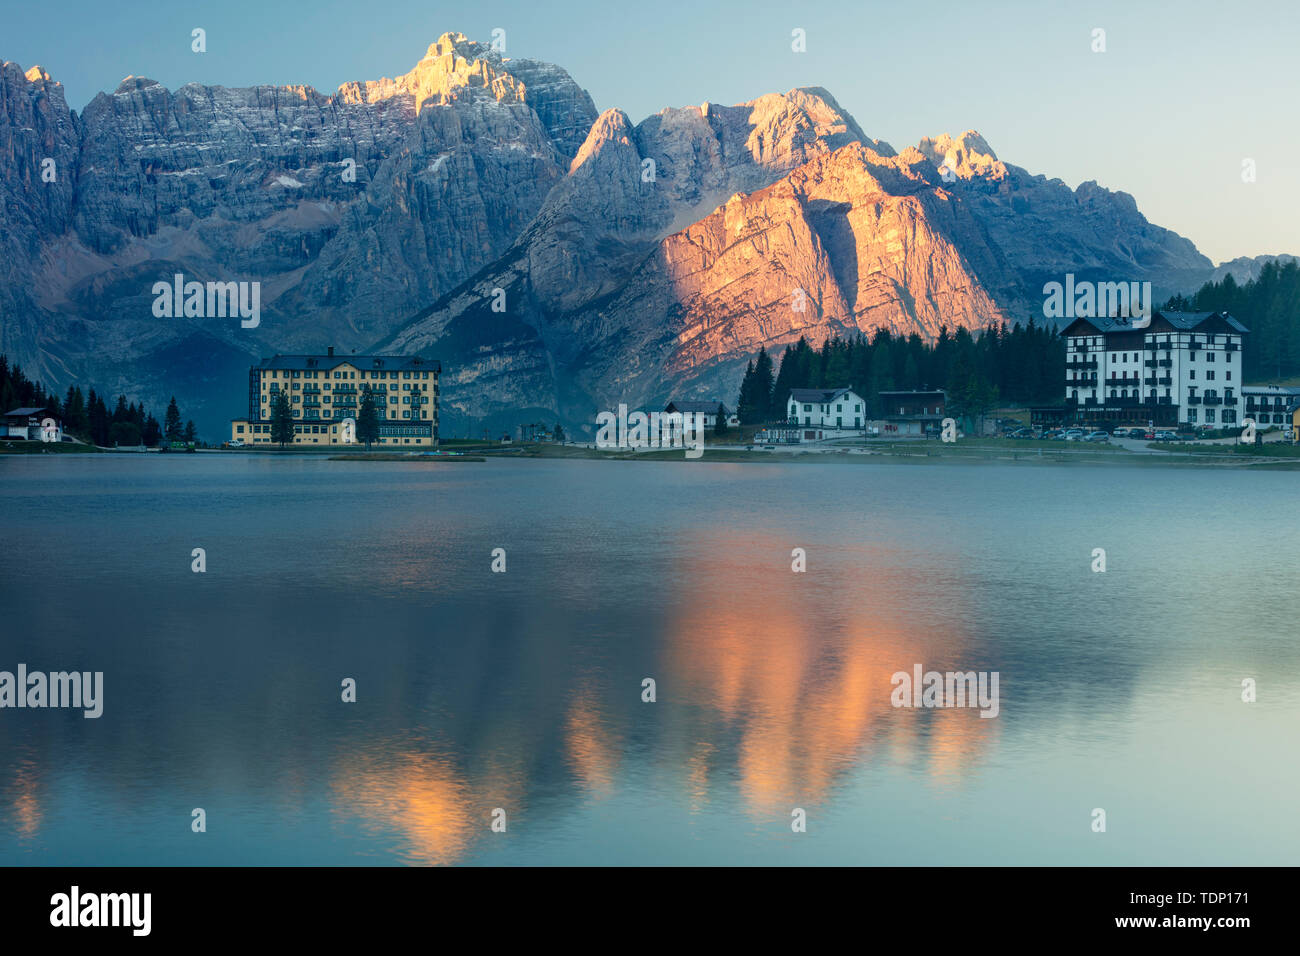 The Marmarole and Sorapiss Groups of the Dolomites at first light tower over Lago Misurina, Belluno, Veneto, Italy - Stock Image